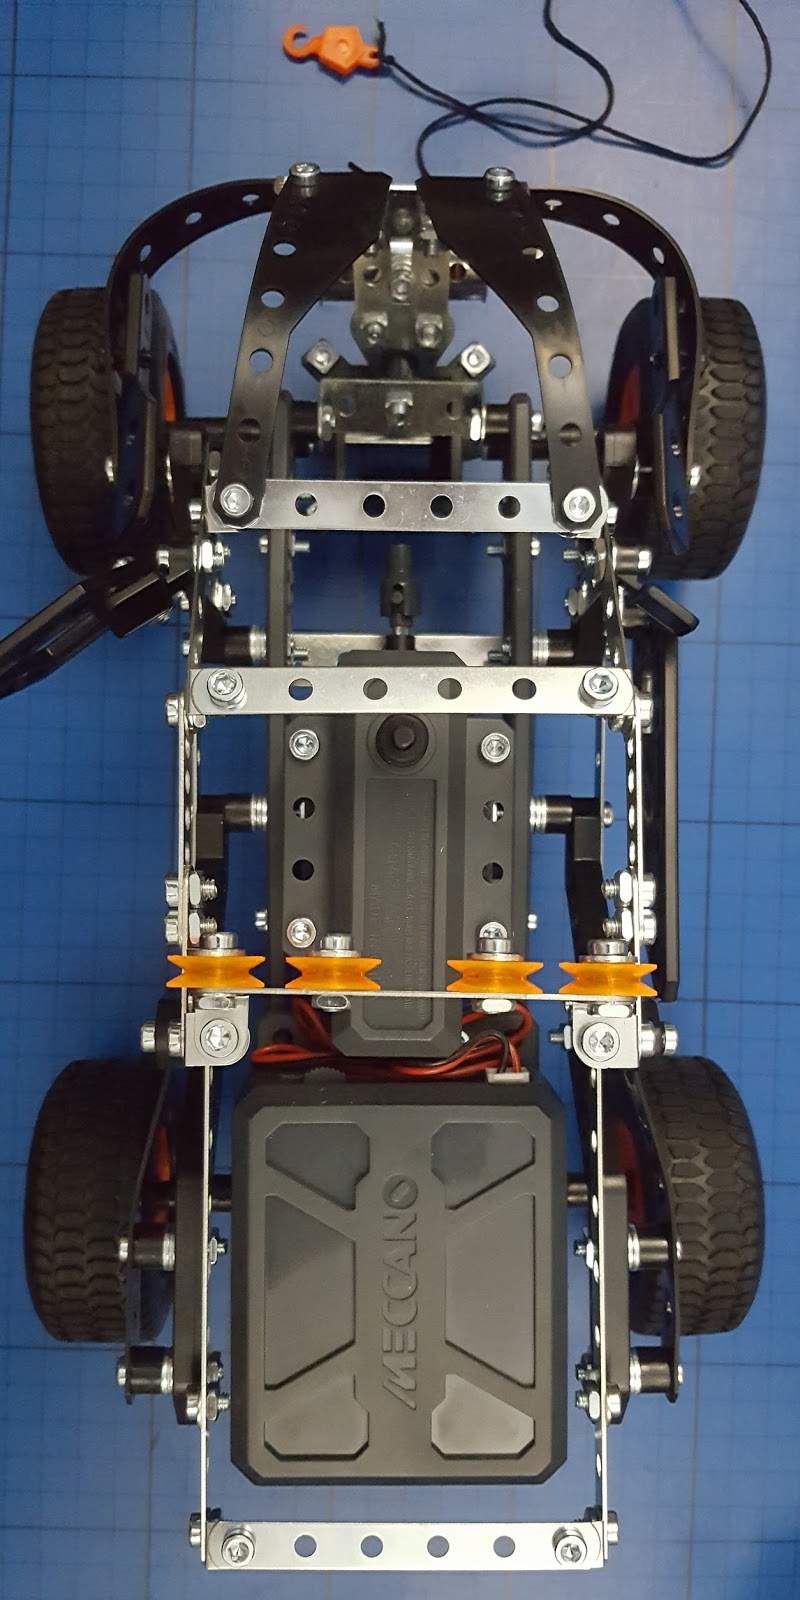 The Brick Castle Meccano 25 4x4 Off Road Truck Review Age 9 Motor Reversing Switches Electronics In Its A Really Nice Model With Bonus That You Can Take It Apart And Make Something Completely Different